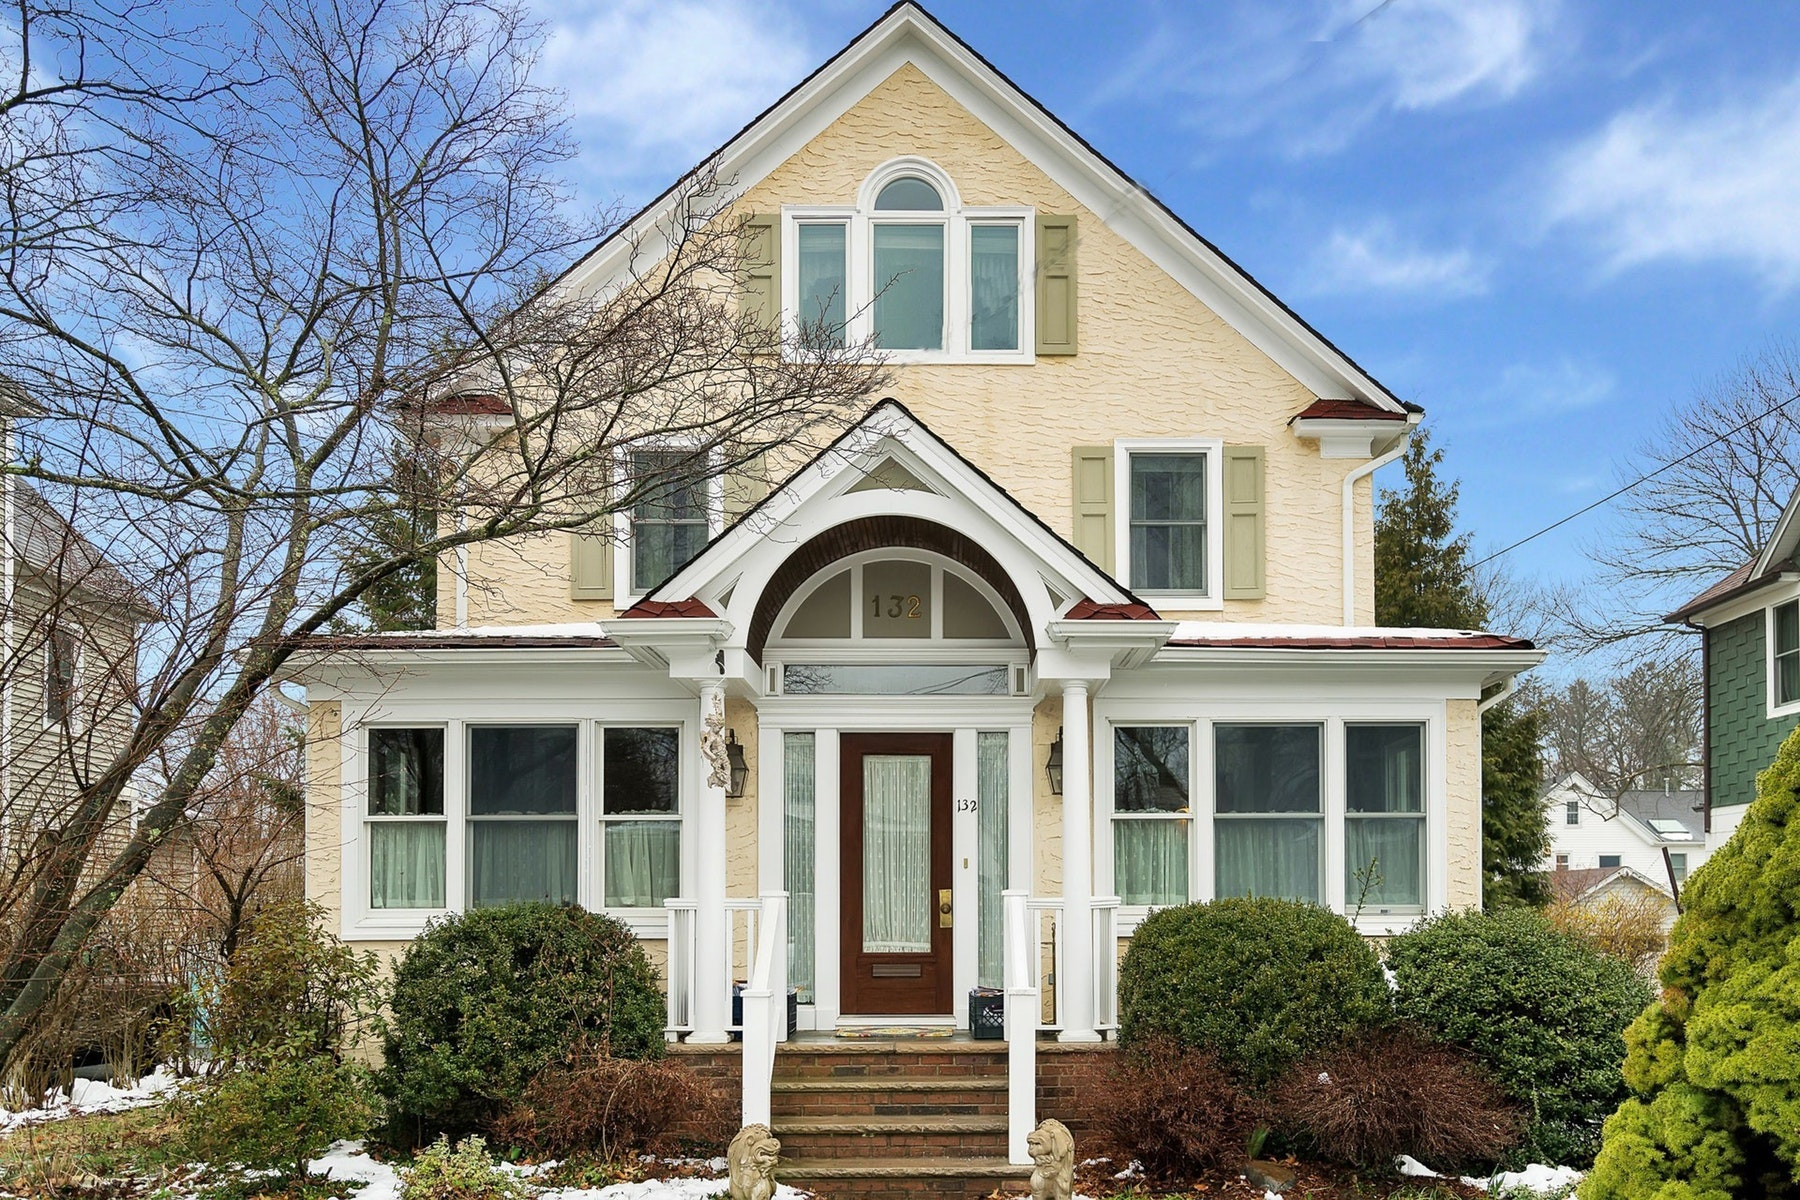 Single Family Home for Sale at Rare Availability In The Somerville School Area. 132 Kenilworth Road, Ridgewood, New Jersey 07450 United States